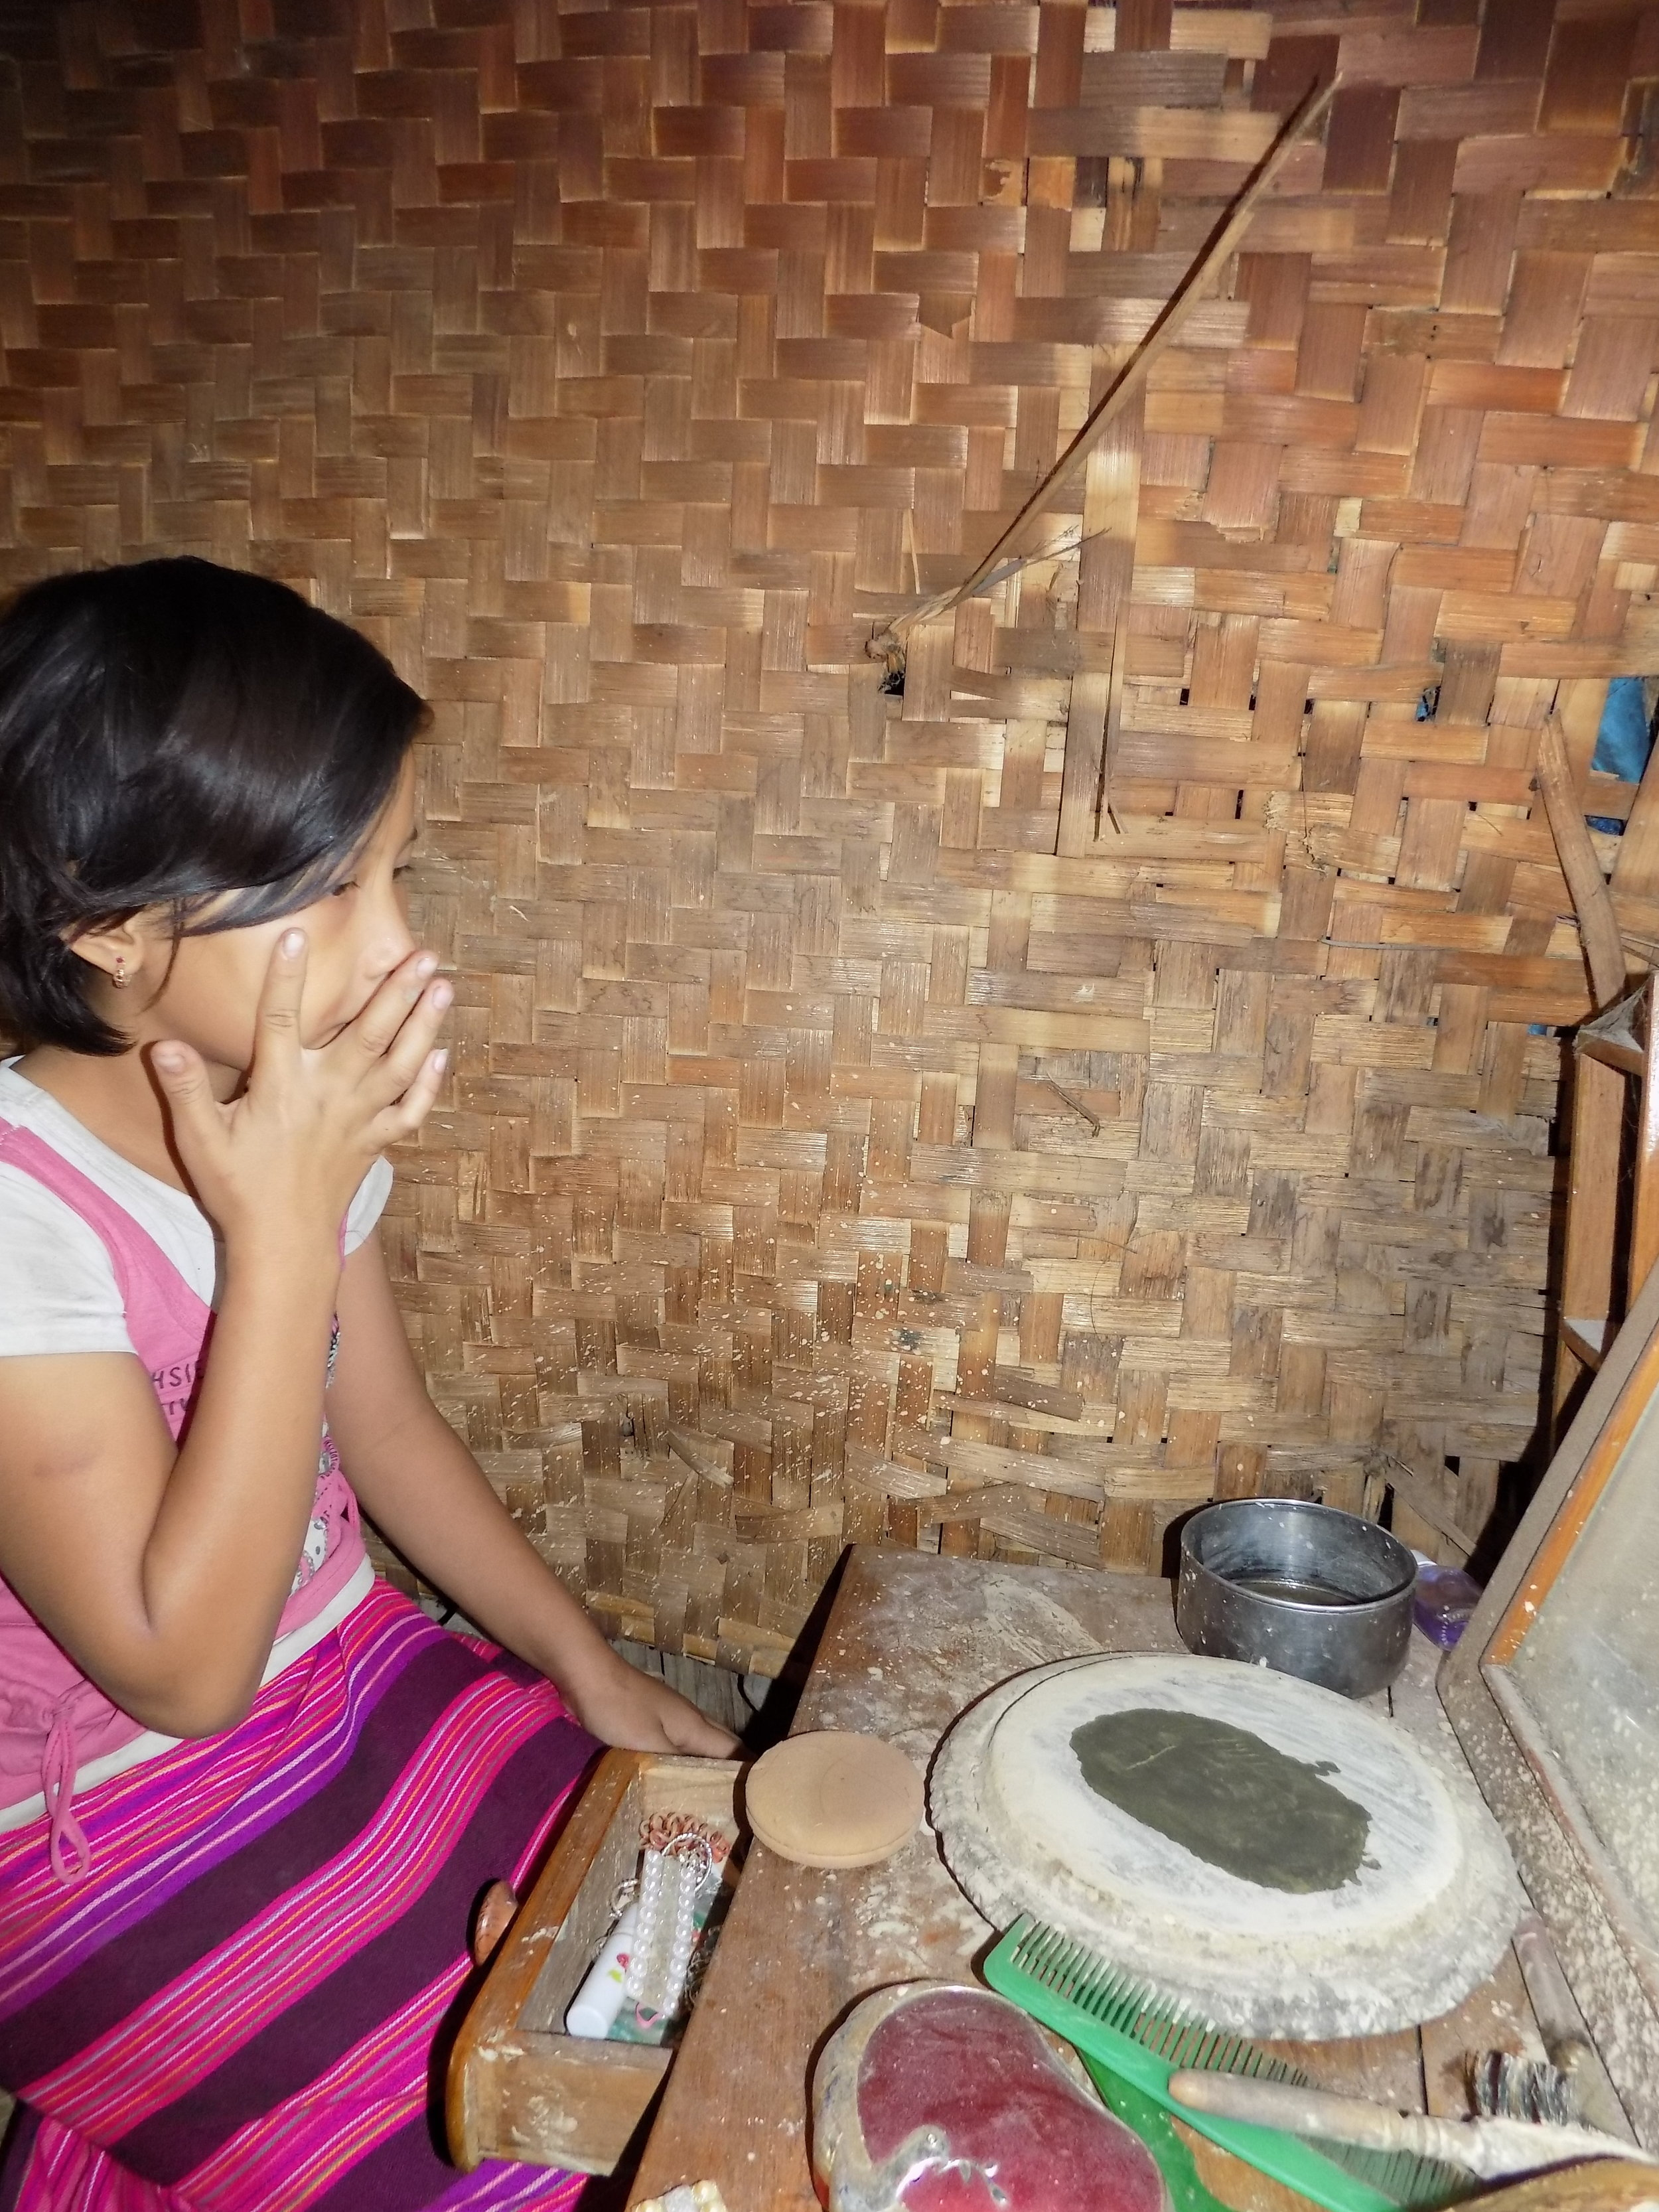 Nung Lao Ngun washes her face and then puts on a makeup called Thanaka. It is used as a sunscreen and helps improve one's complexion and keep the skin cool.